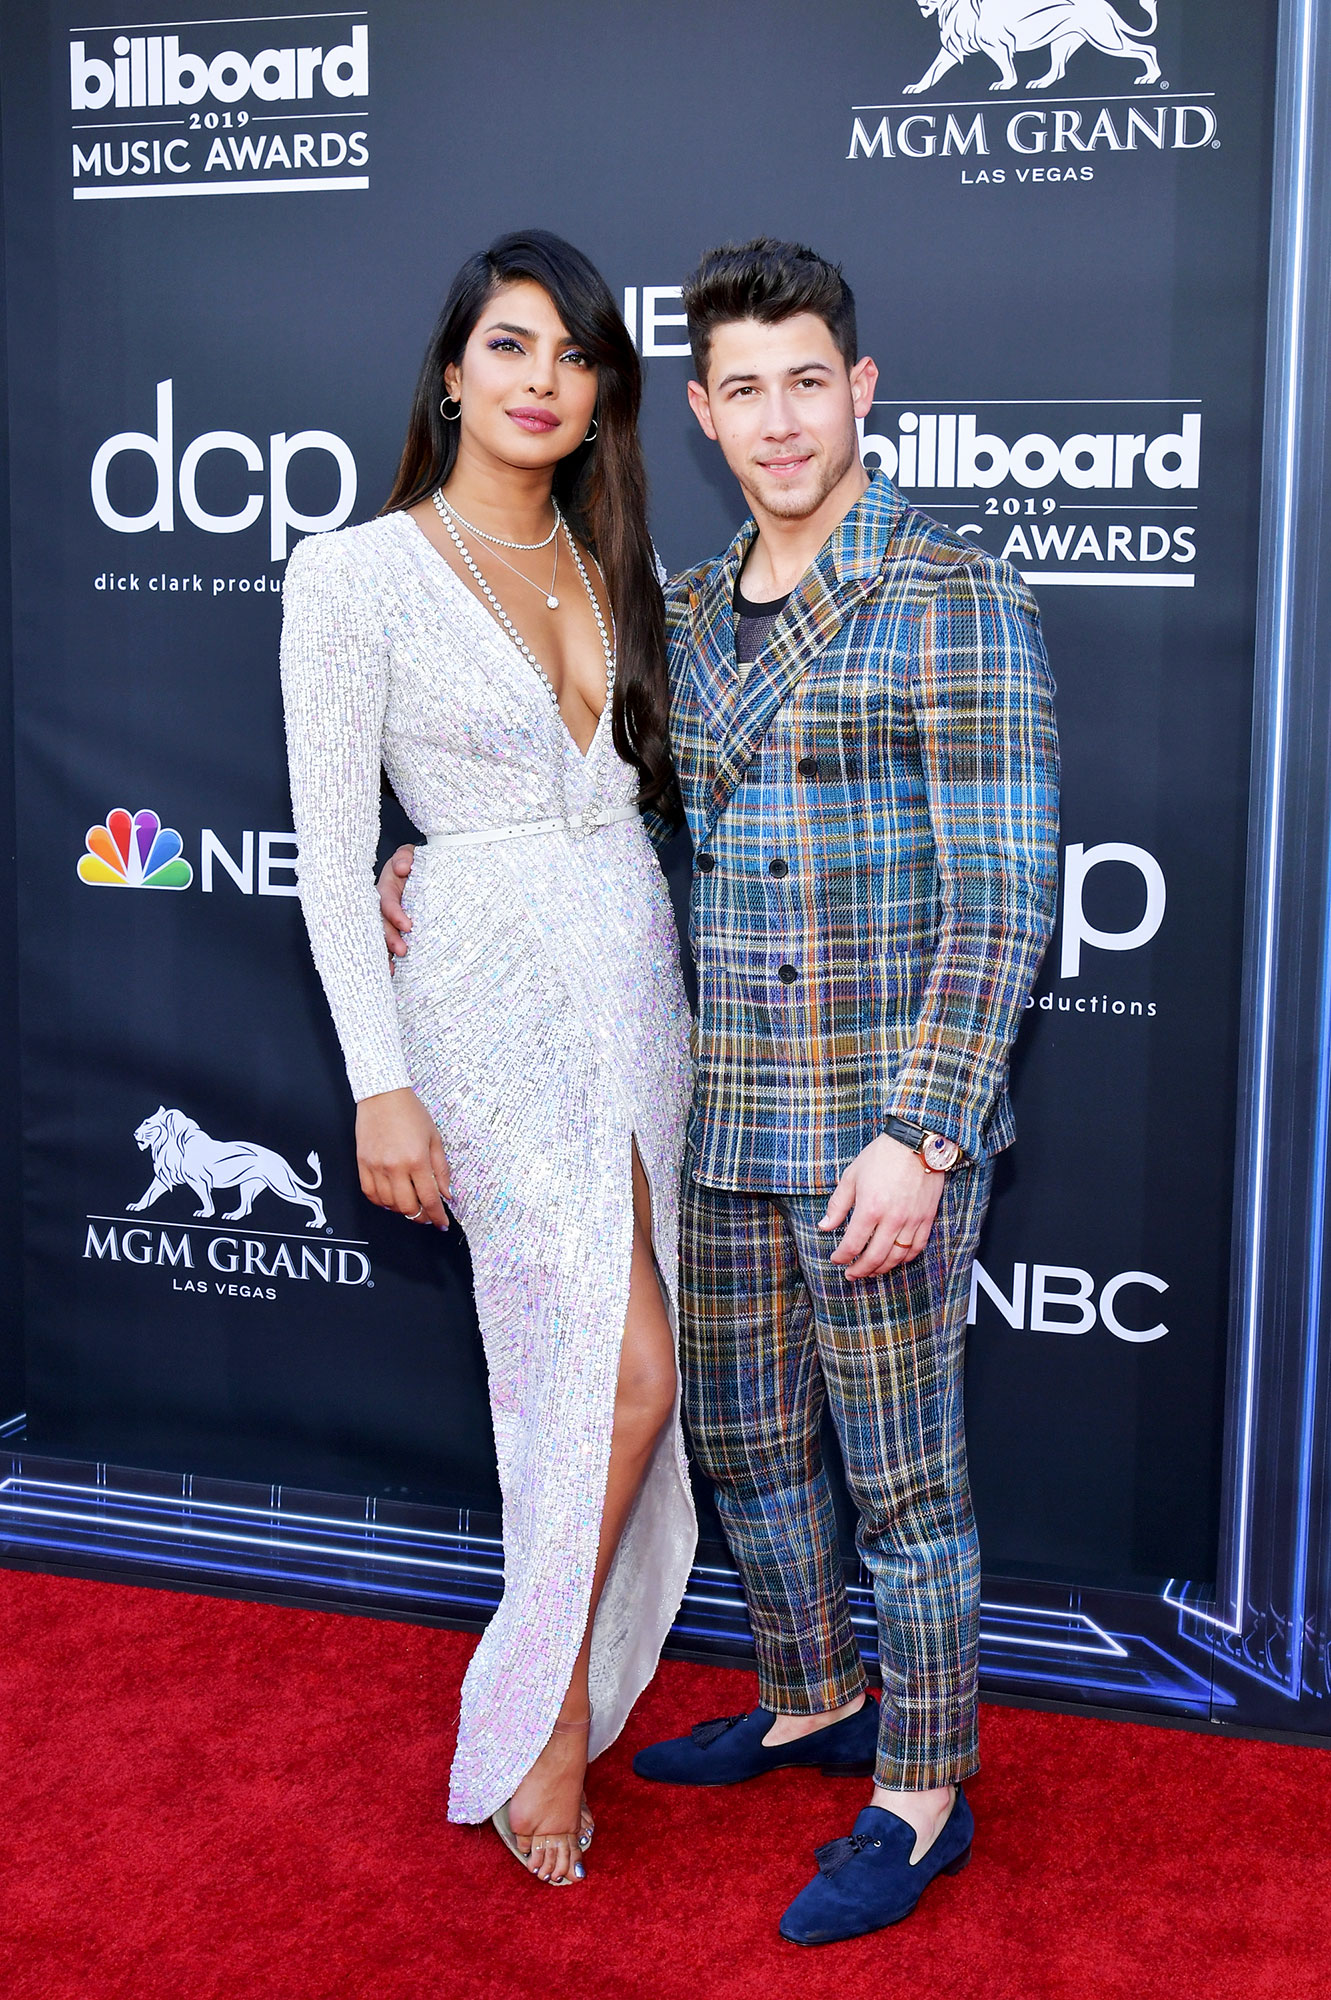 See the Hottest Couples at the BBMAs Priyanka Chopra and Nick Jonas - The former Quantico actress stunned in a plunging Zuhair Murad gown and Tiffany & Co. diamonds, while her hubby played with prints in a double-breasted plaid suit.